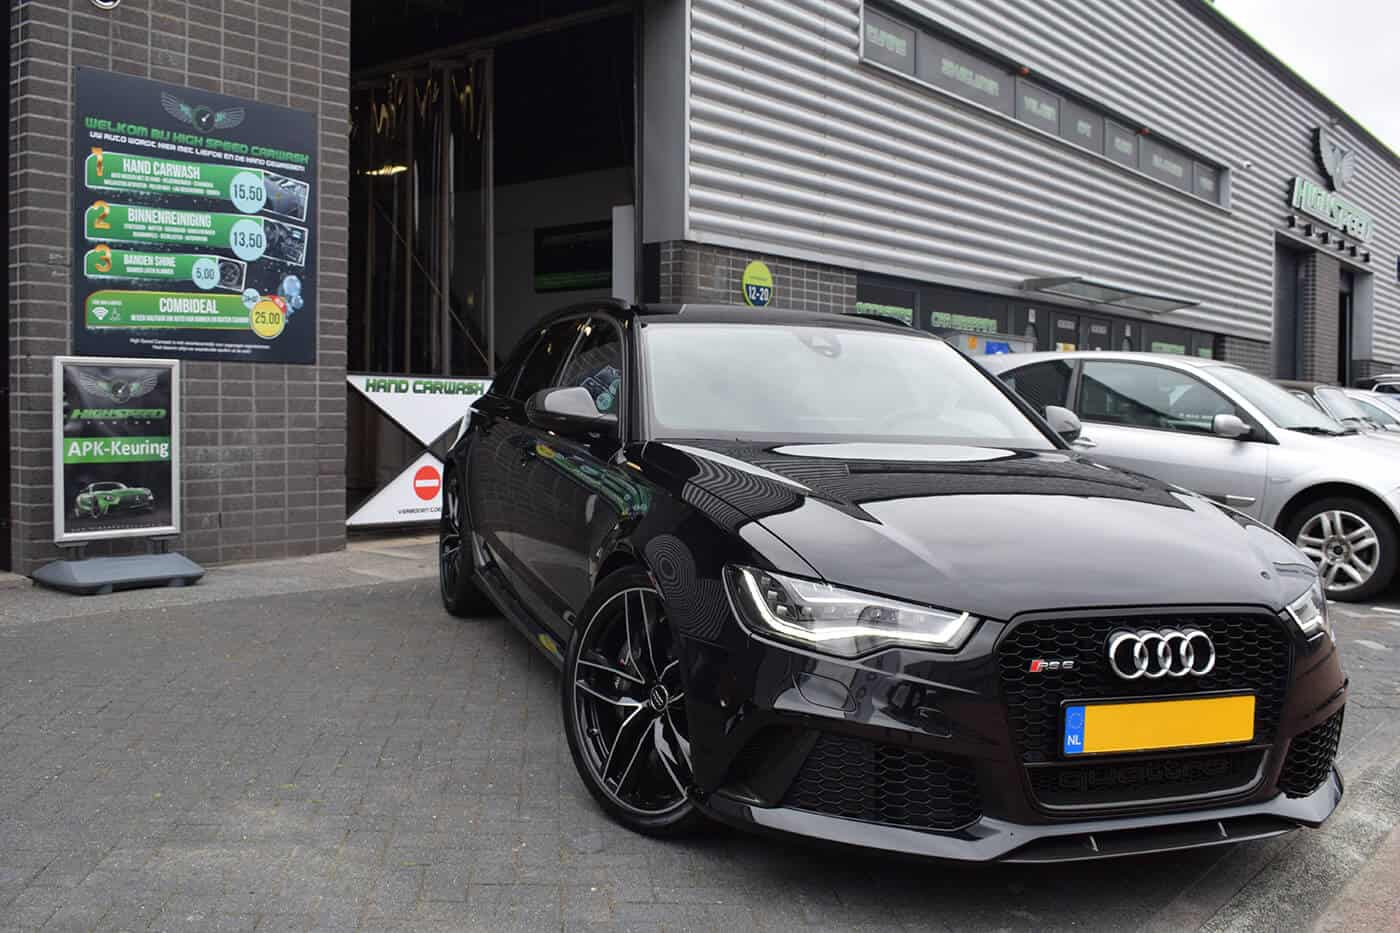 High Speed Tuning Amsterdam - Carwash Amsterdam 1400px